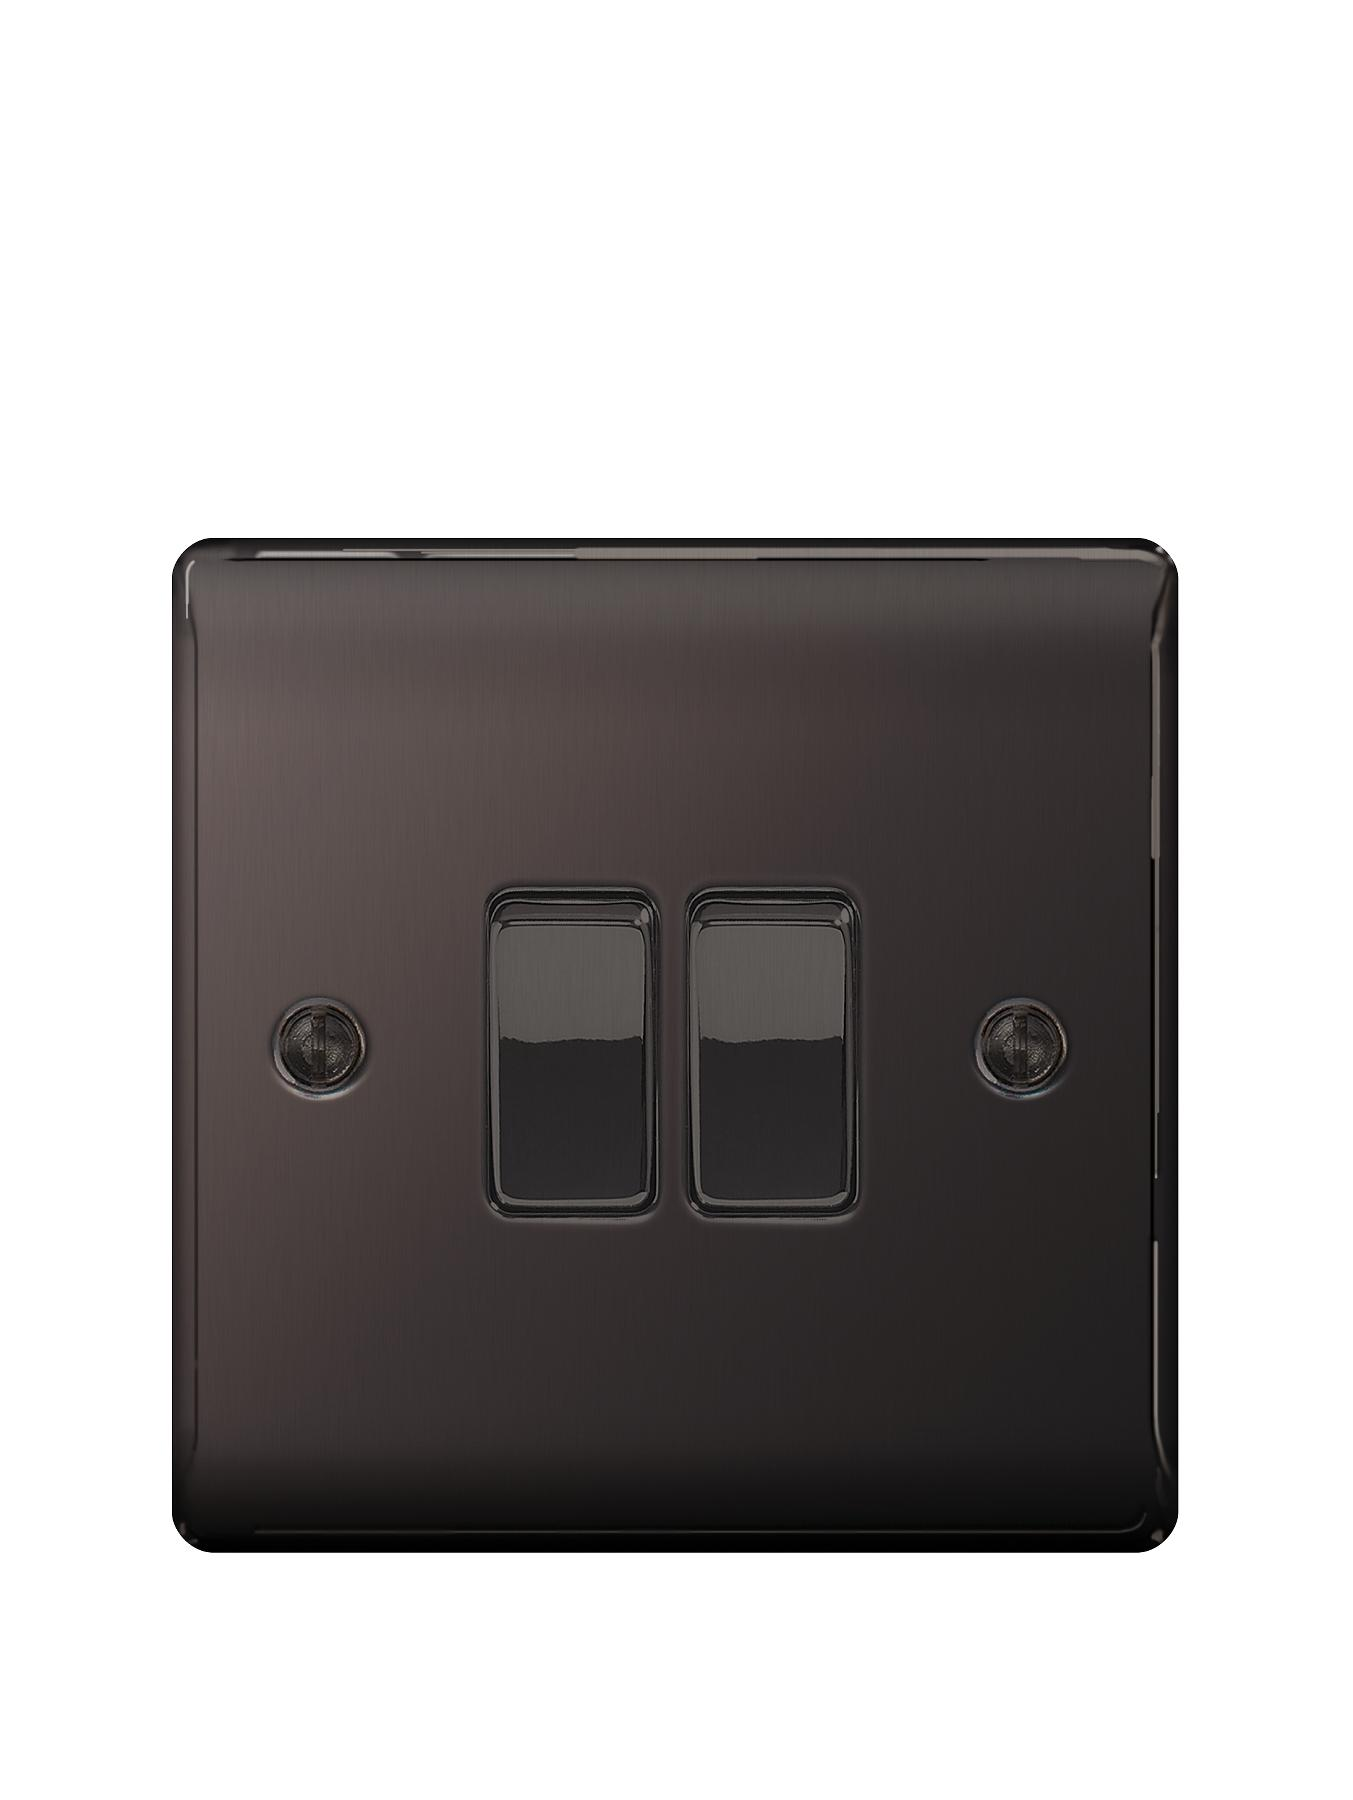 British General Electrical Raised 2g 2-Way Switch - Black Nickel